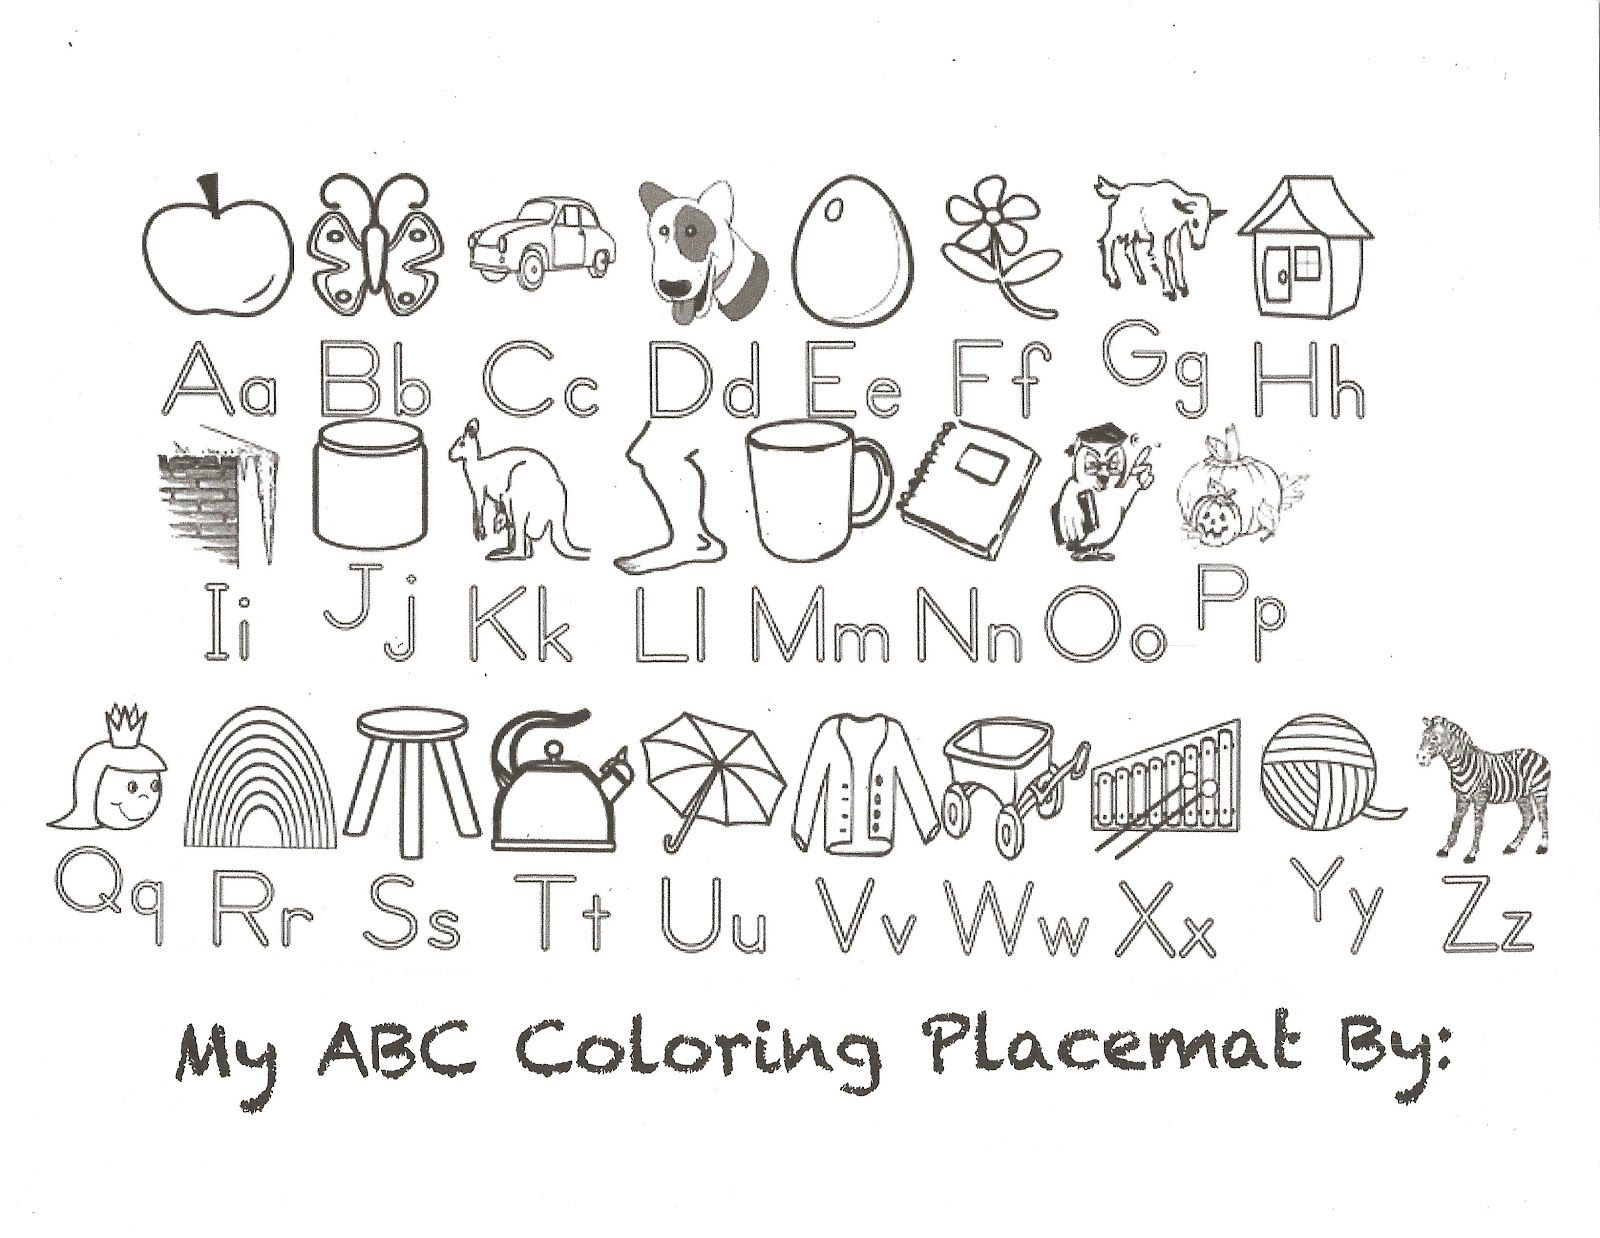 Abc Coloring Placemat